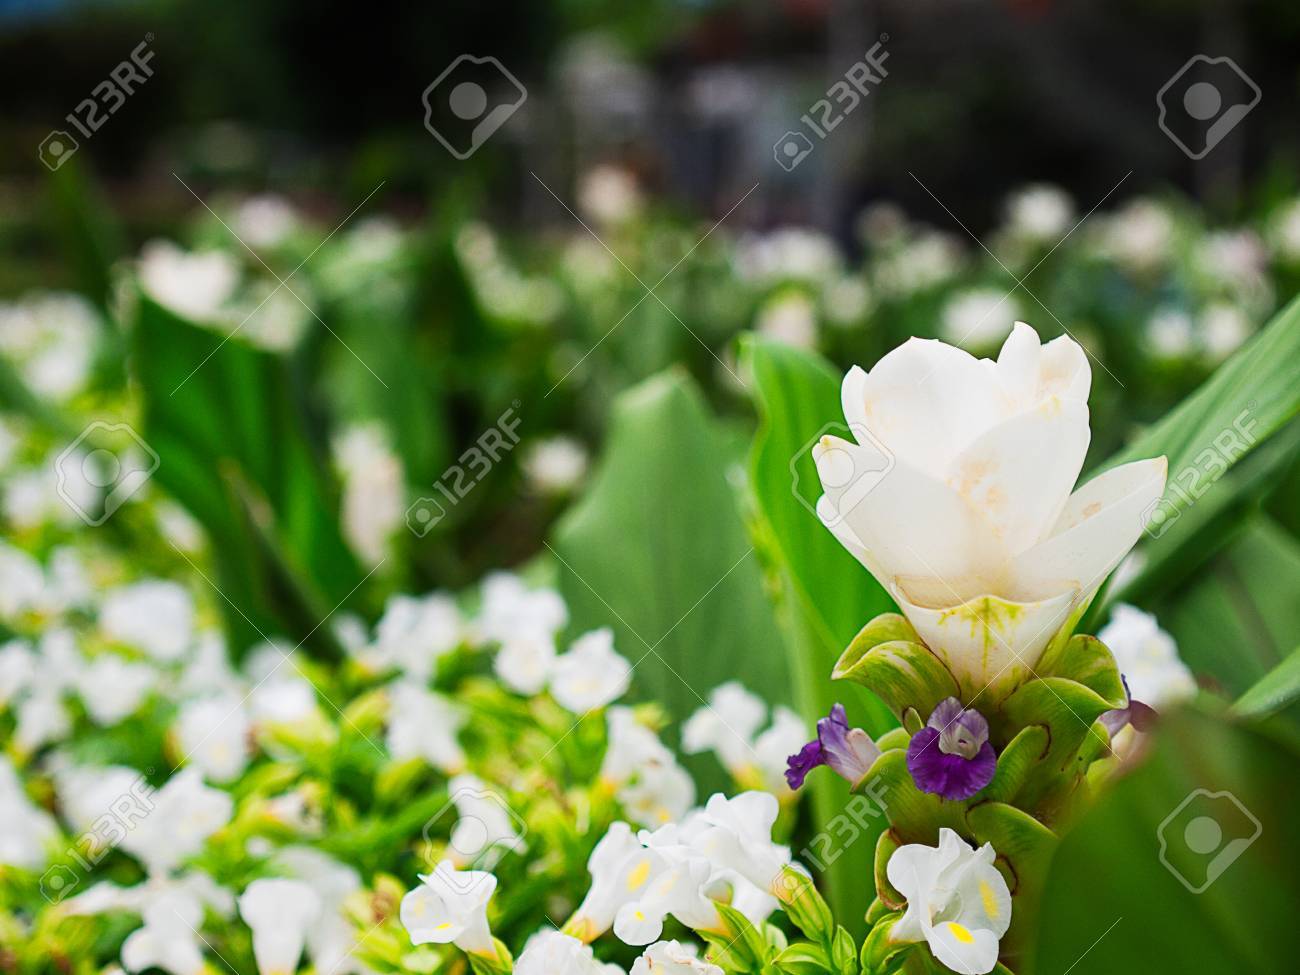 Siam tulip flowerbeautiful nature for add text or design stock siam tulip flowerbeautiful nature for add text or design stock photo izmirmasajfo